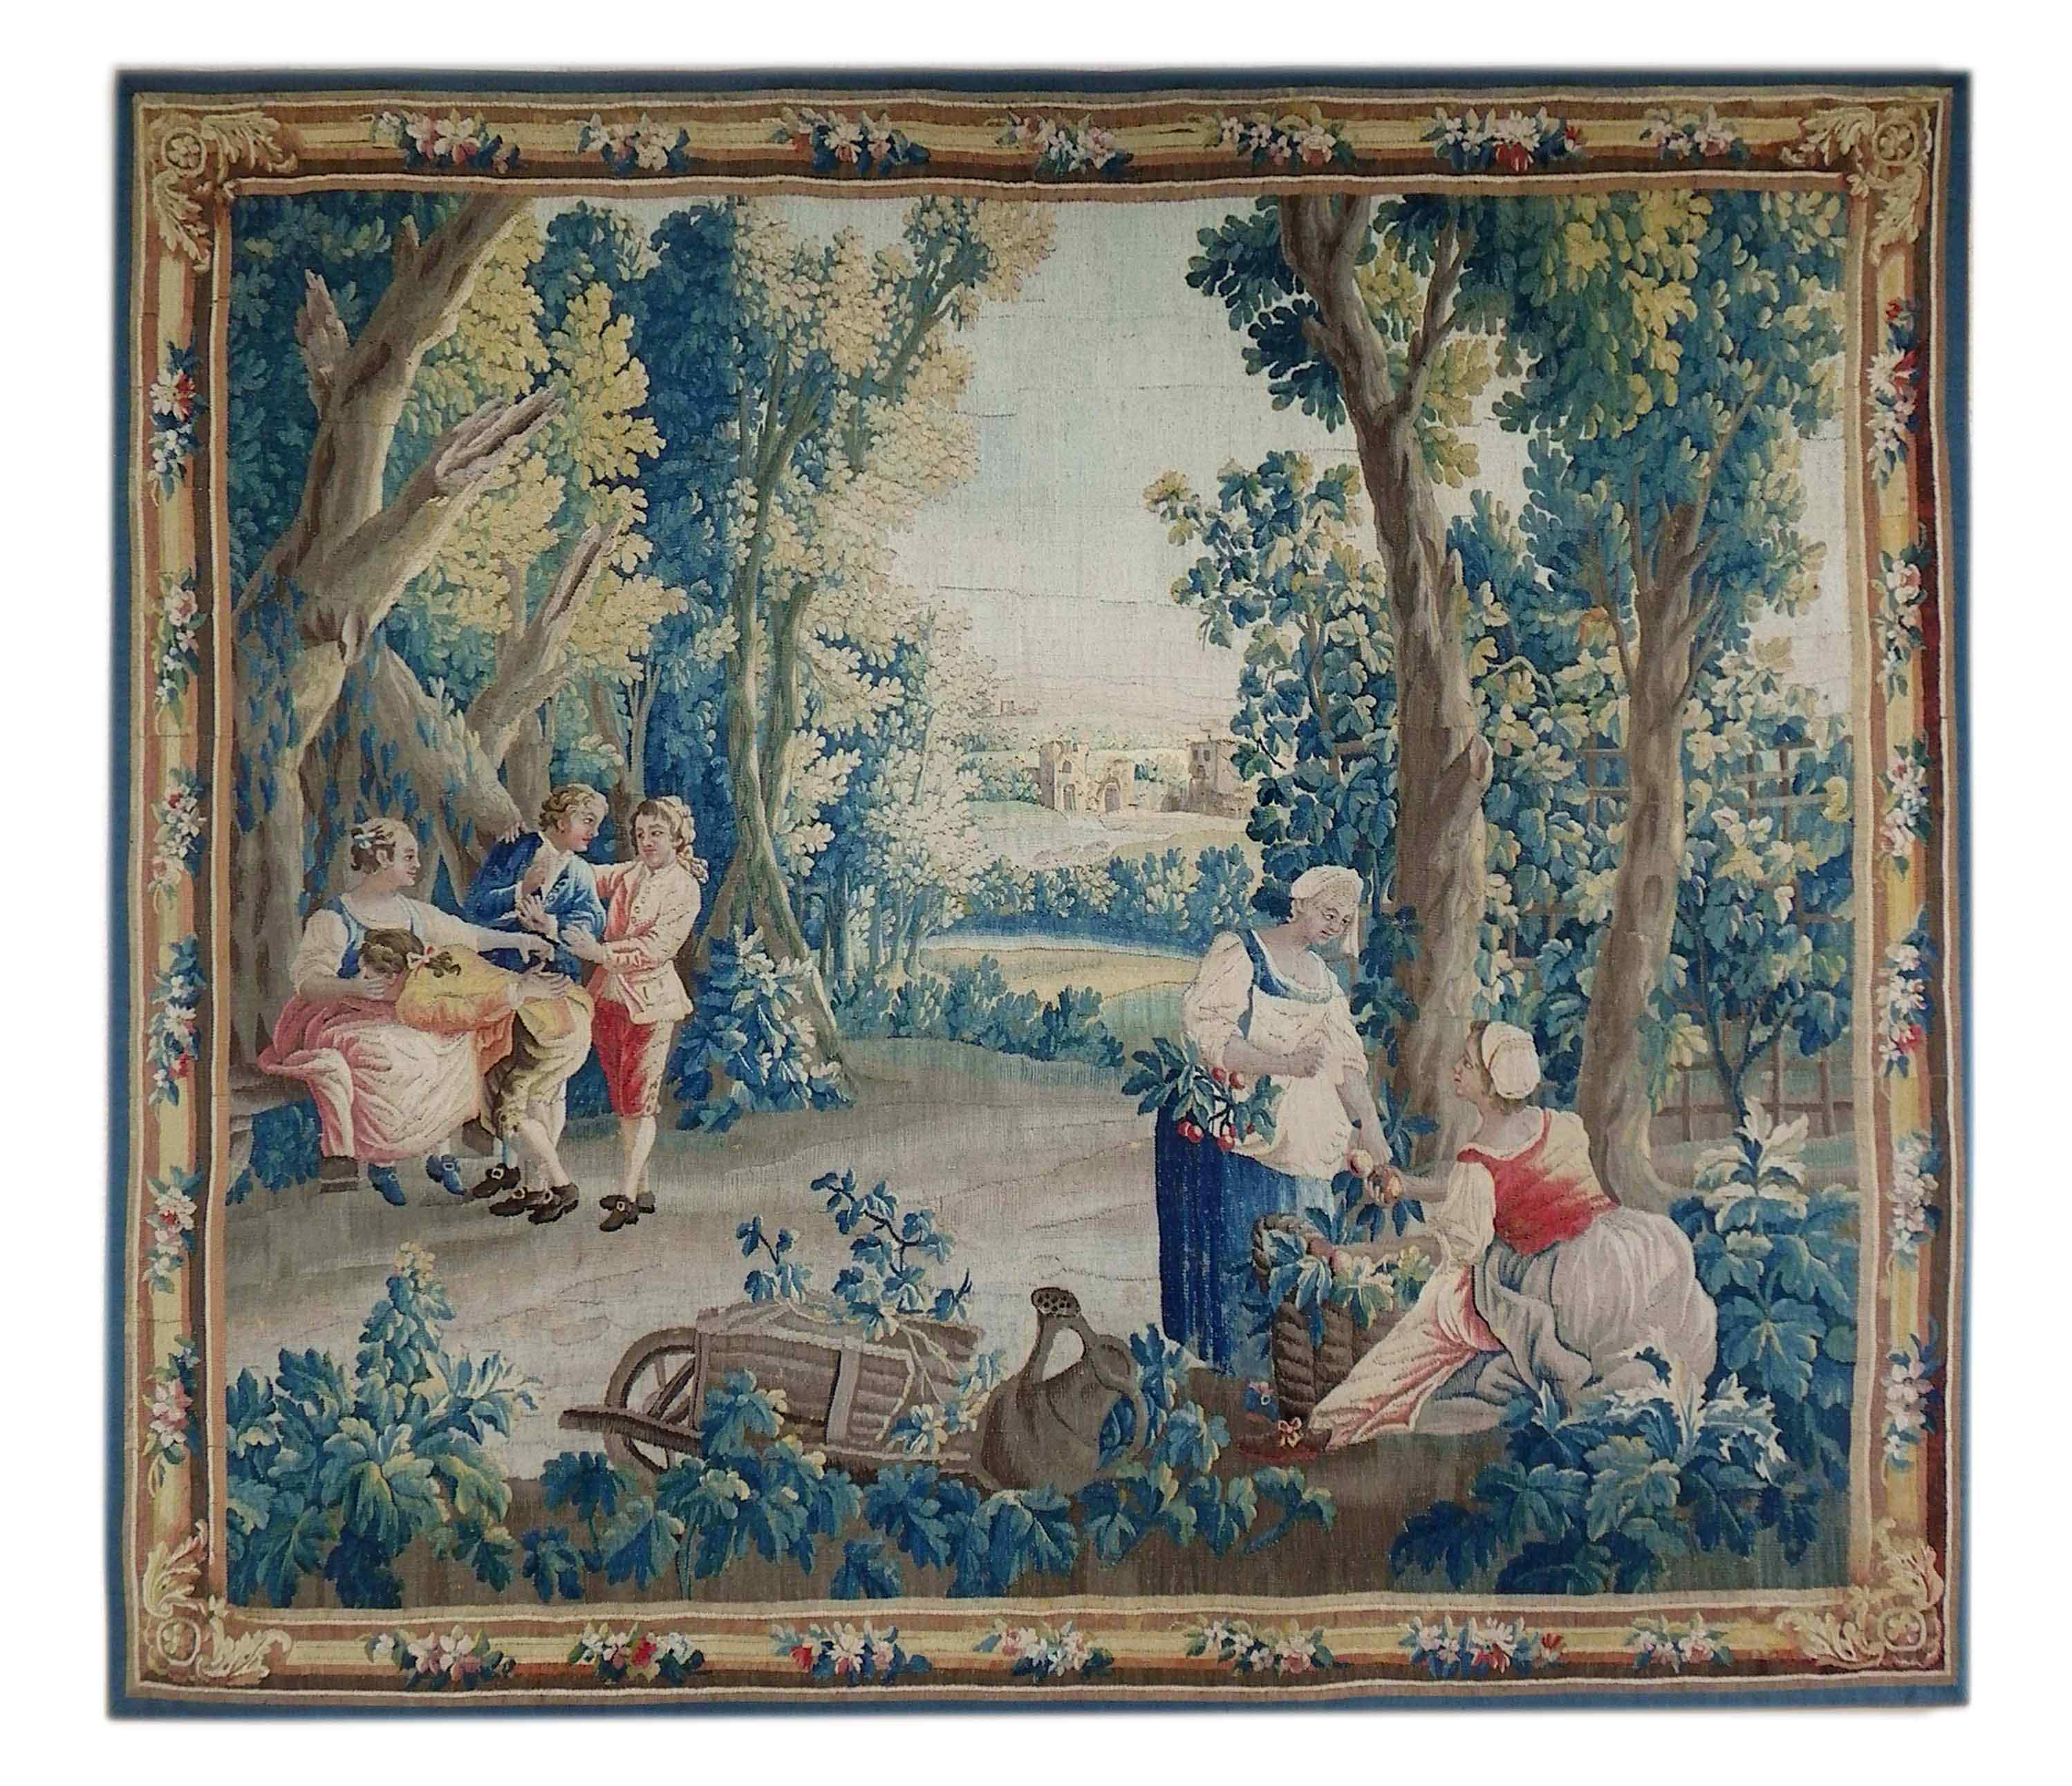 Aubusson originale del XVIII secolo